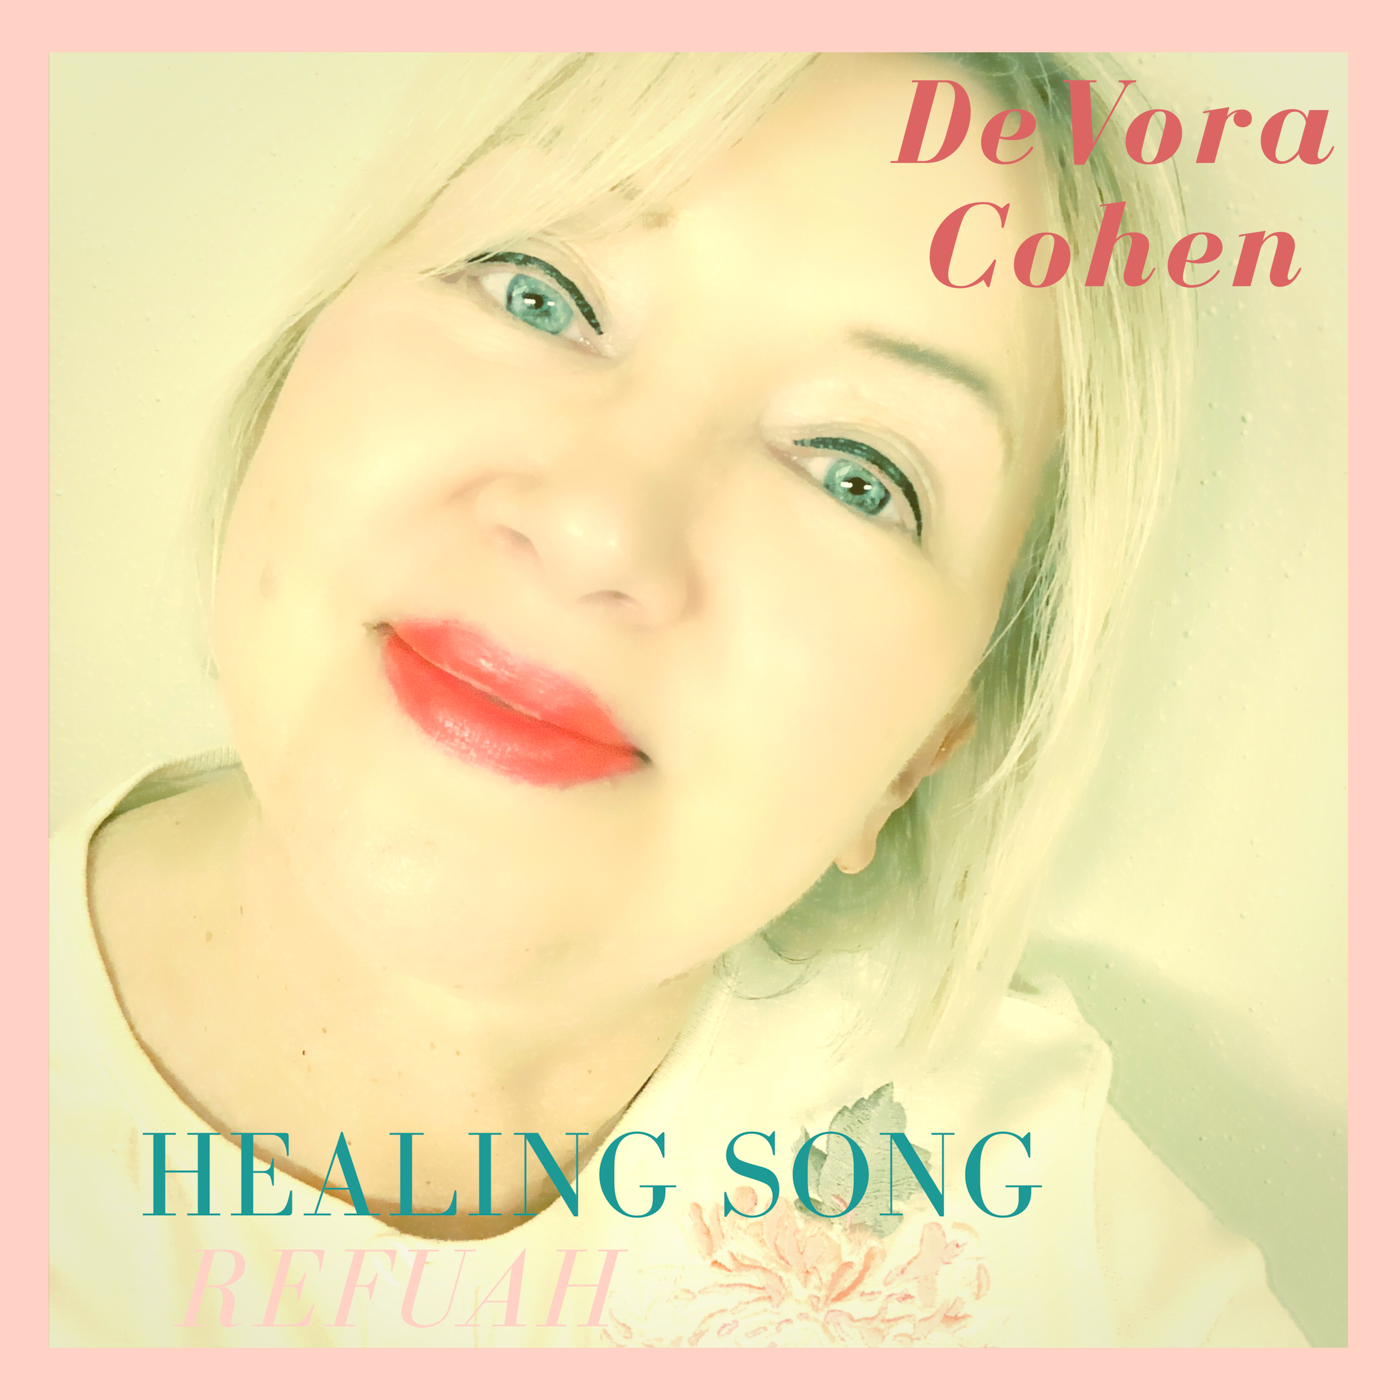 Healing Song in Hebrew/English